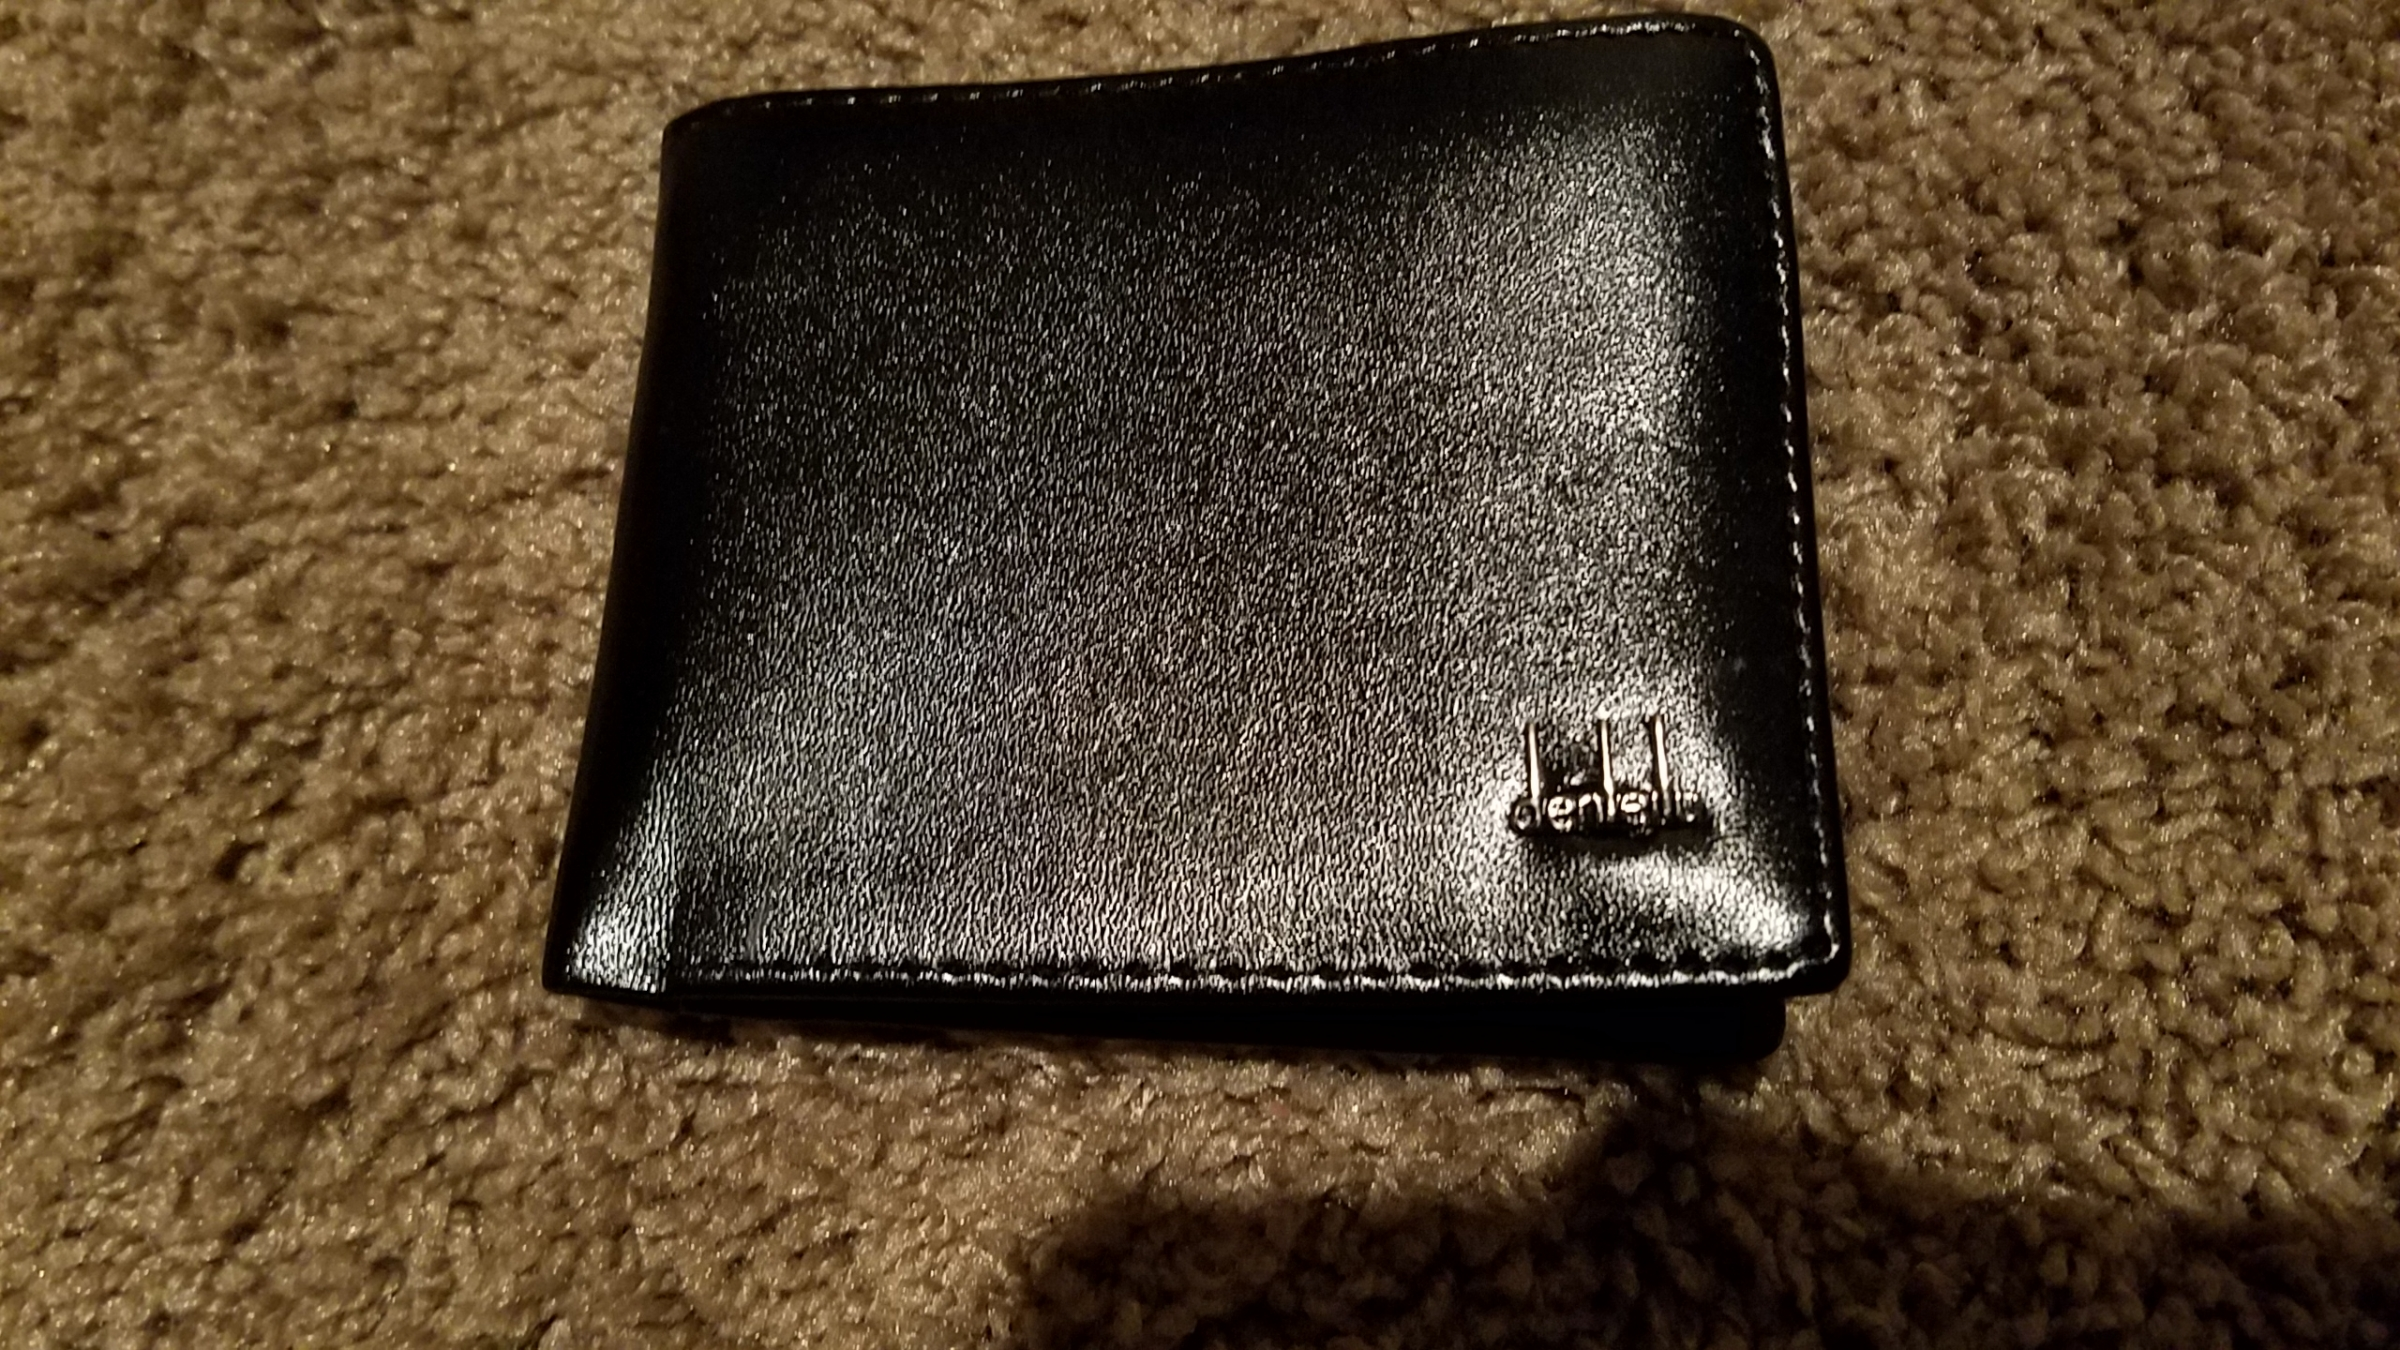 Nice wallet, very light material.